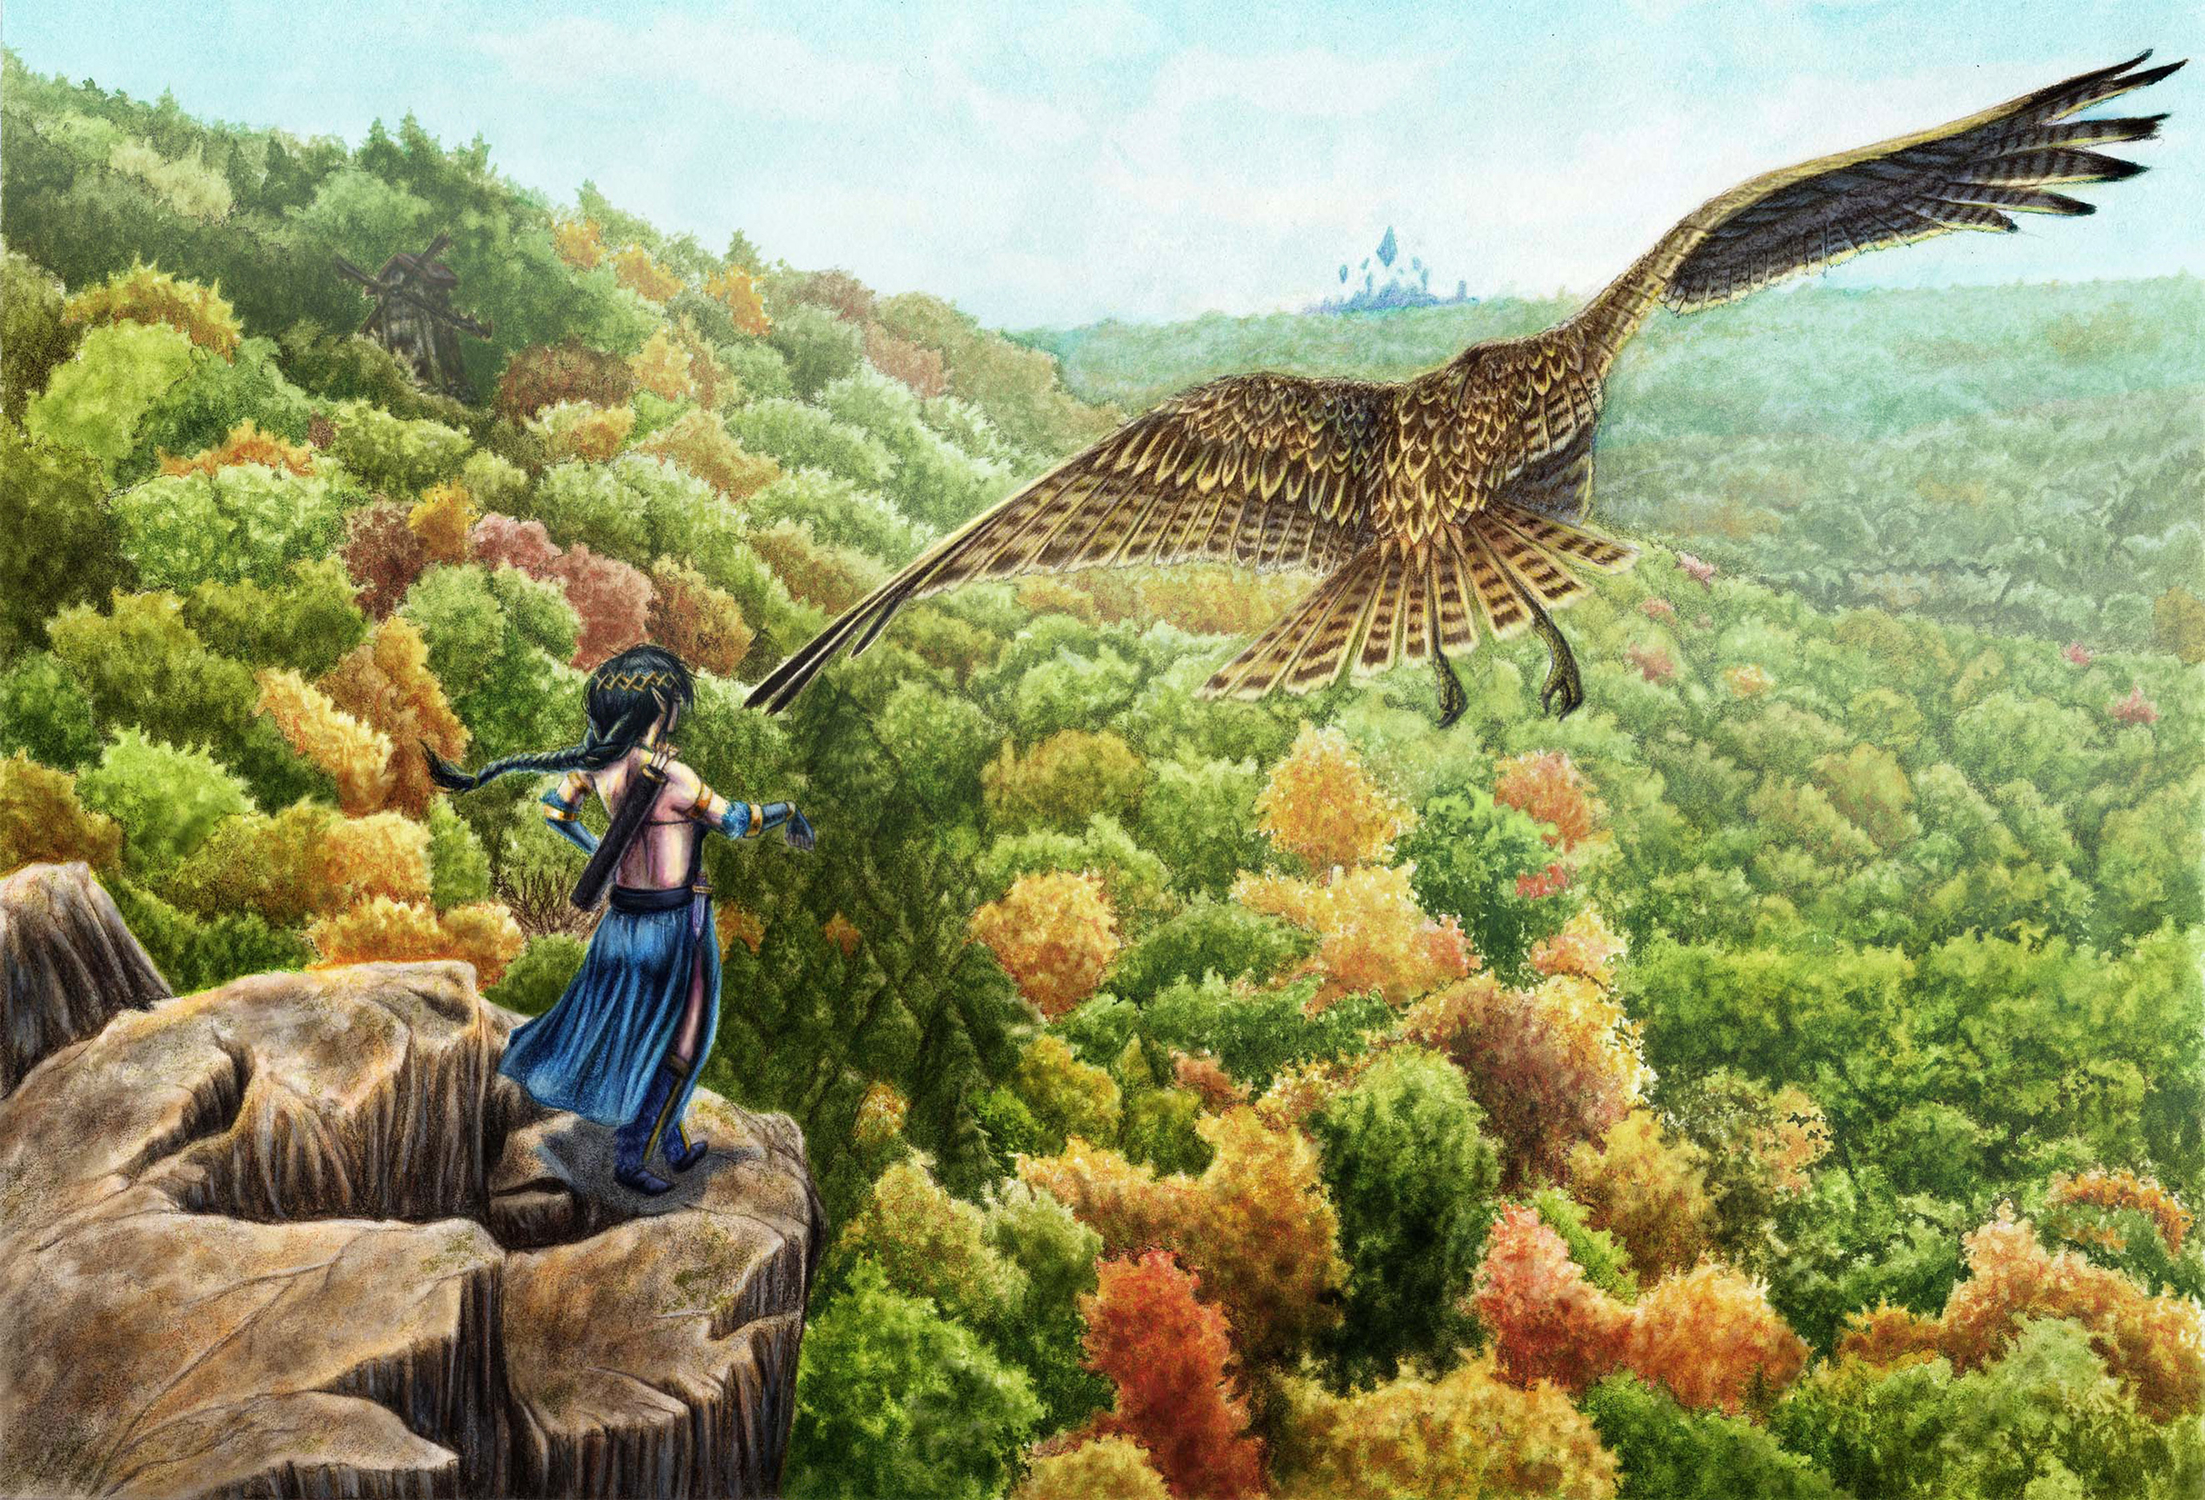 Forest Overlook Artwork by Zachary Bacus